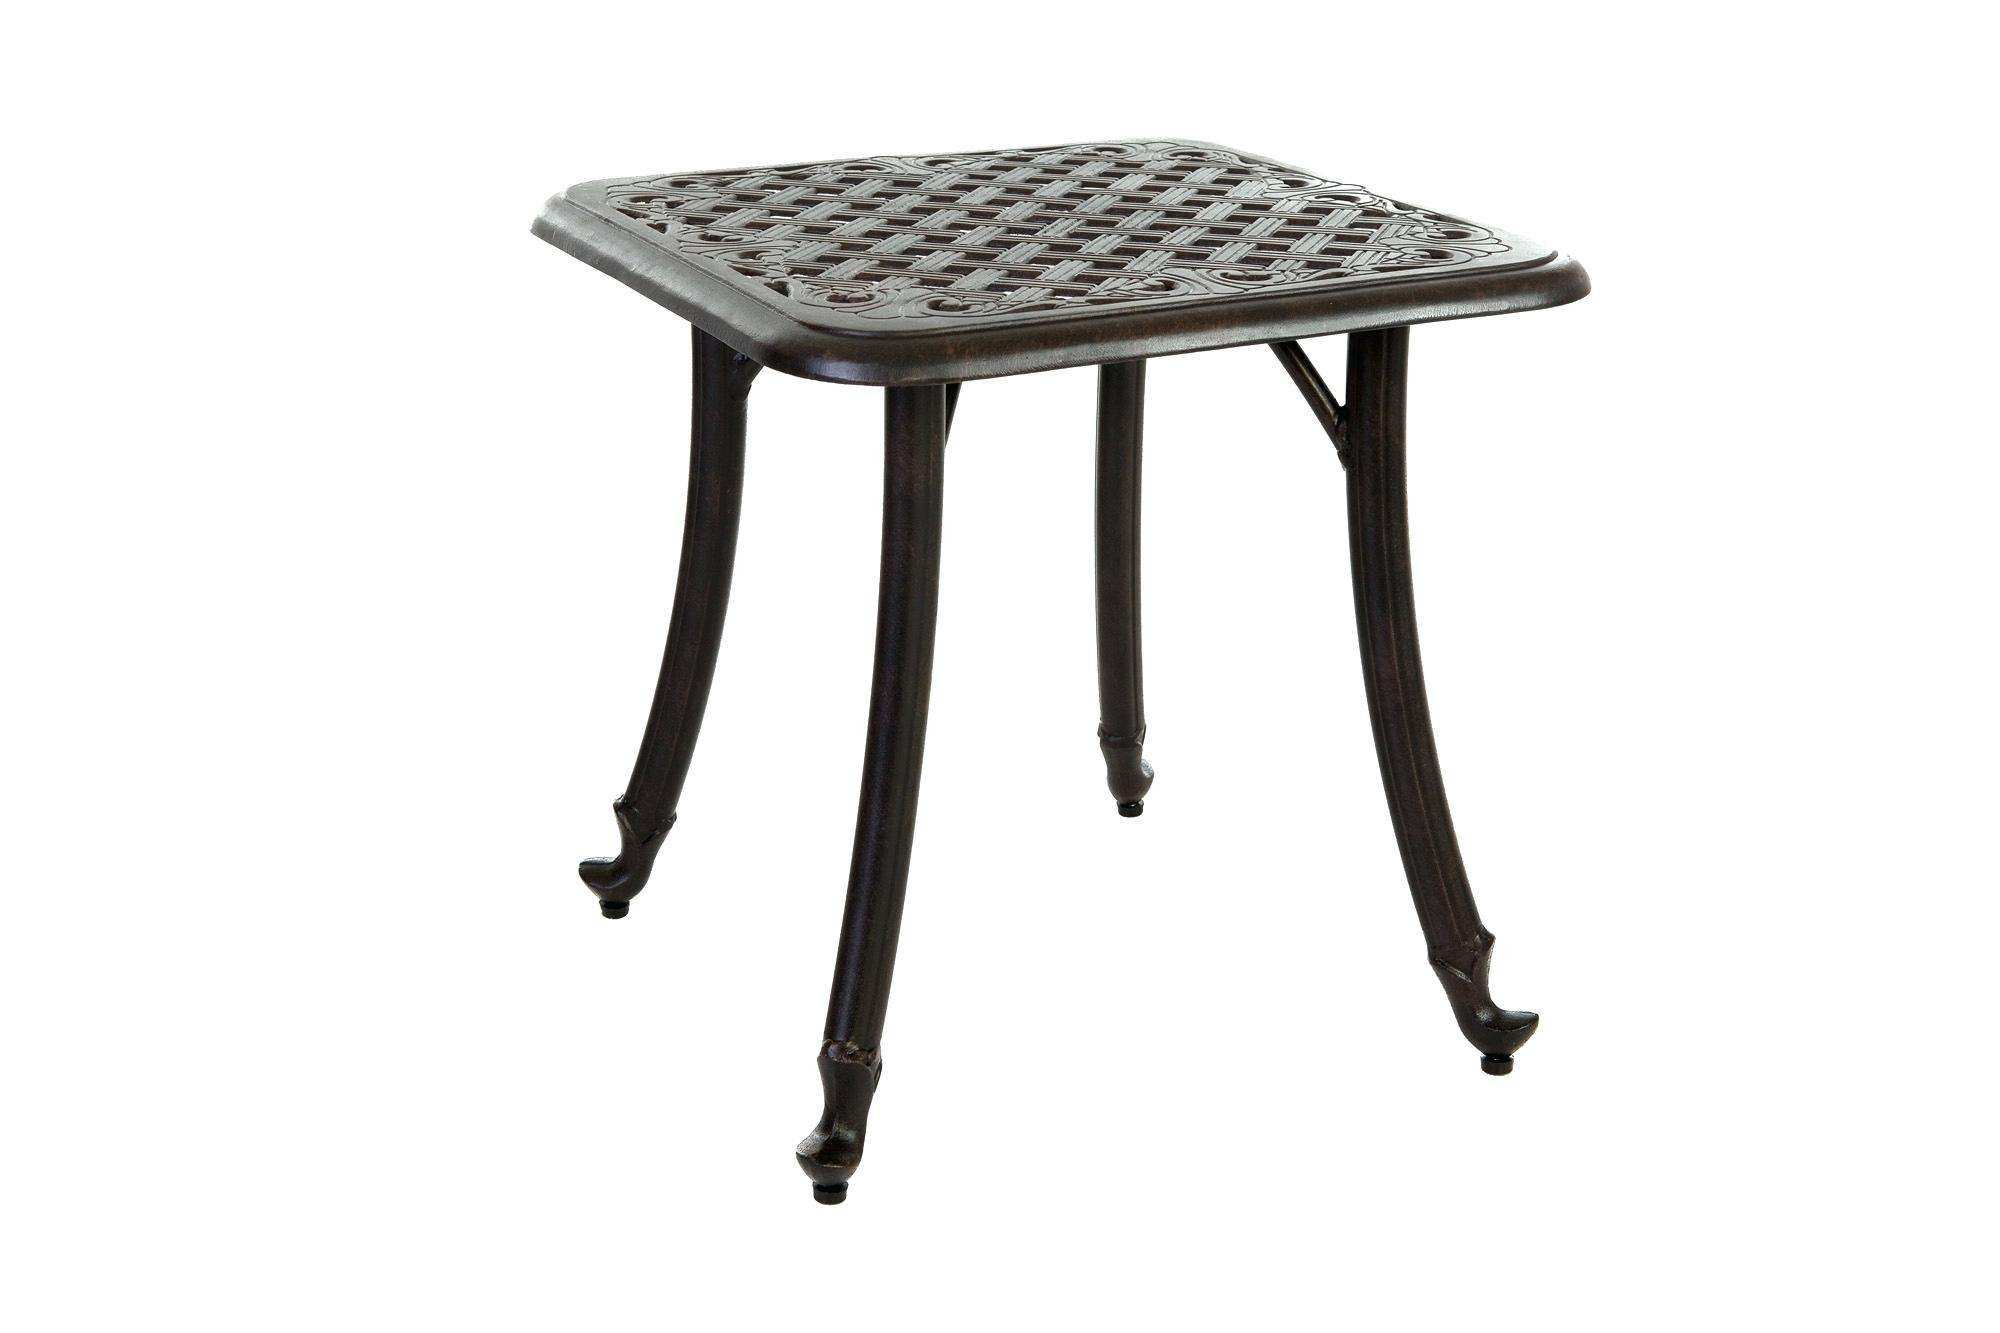 White Patio Side Table Inspirational Wicker Patio Side Table New